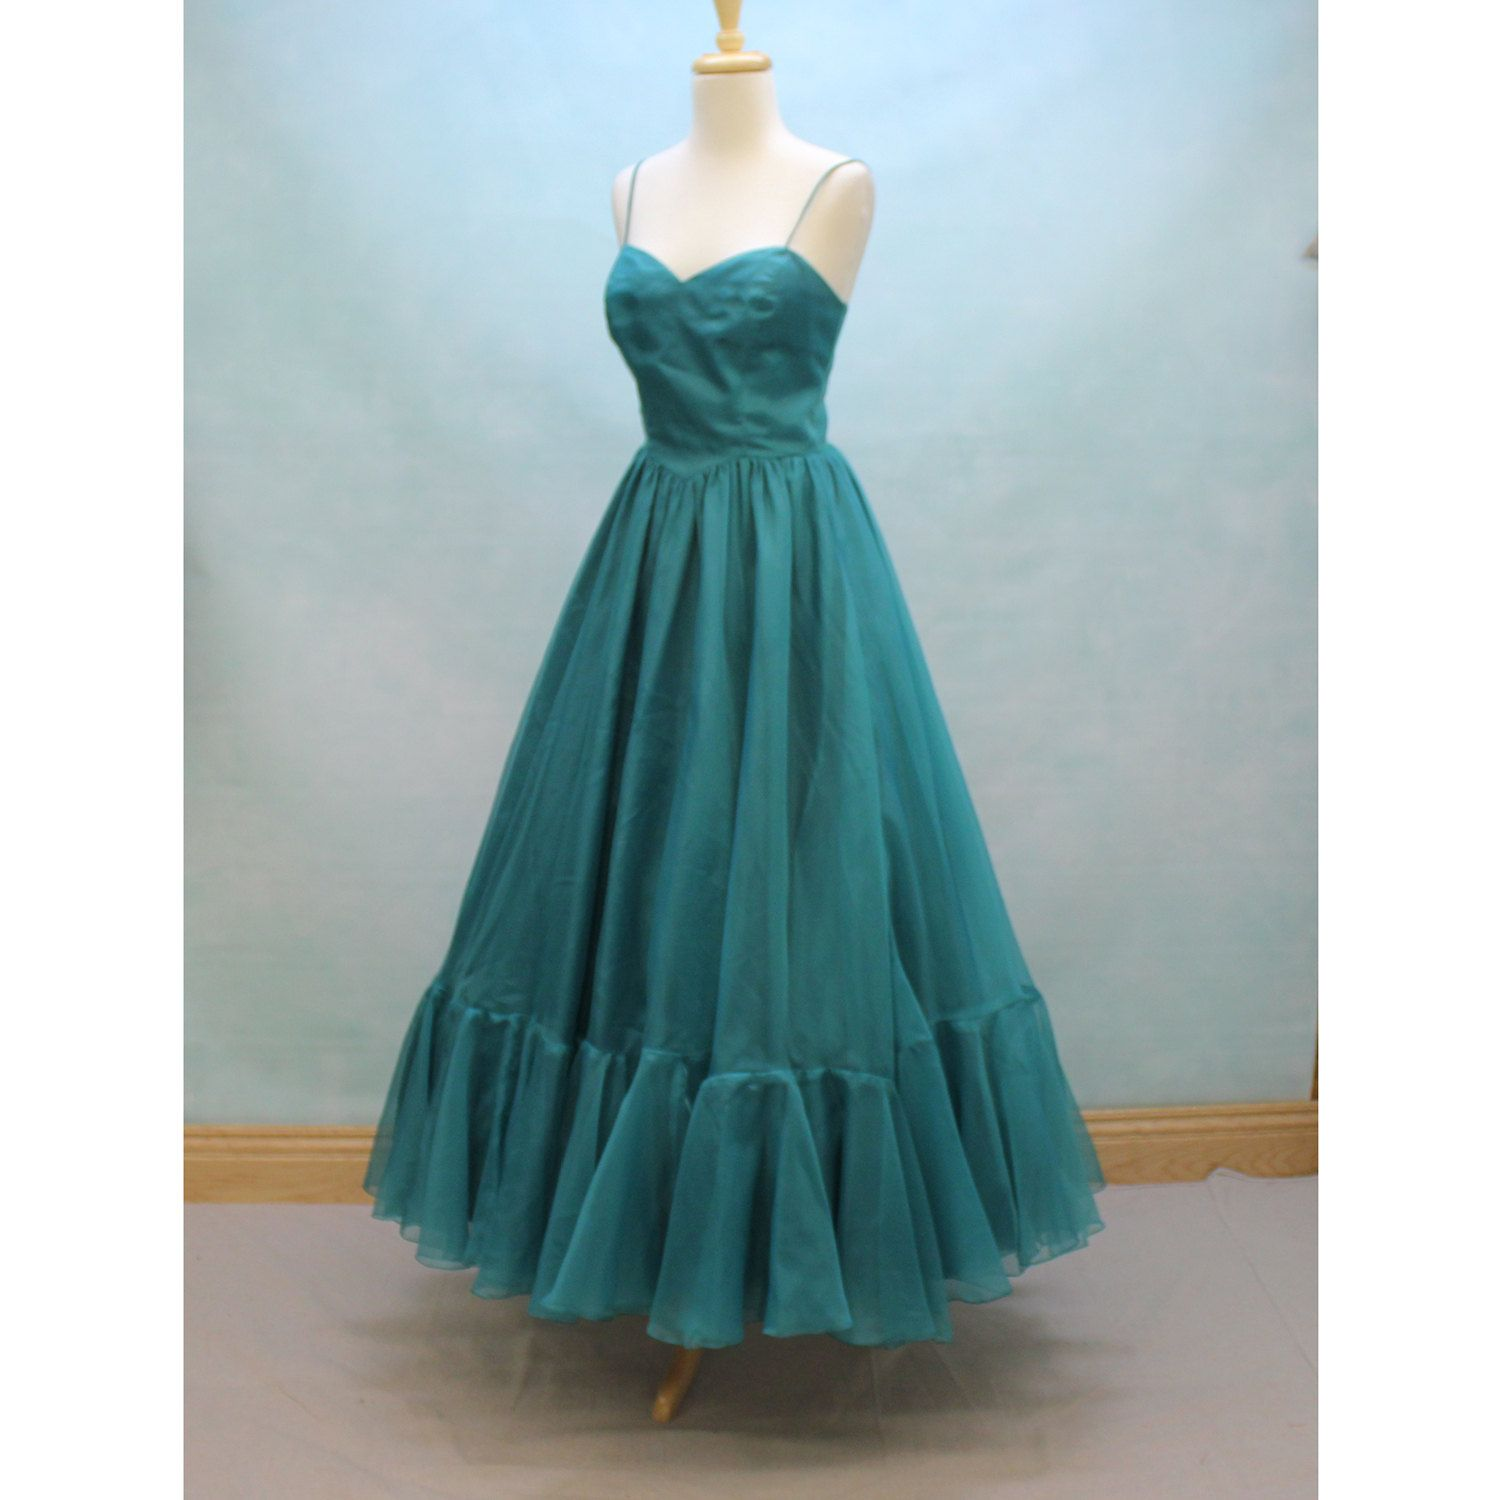 Reserved 70 S Prom Dress In Teal Taffeta And Chiffon Etsy 70s Prom Dress 70s Prom Prom Dresses Vintage